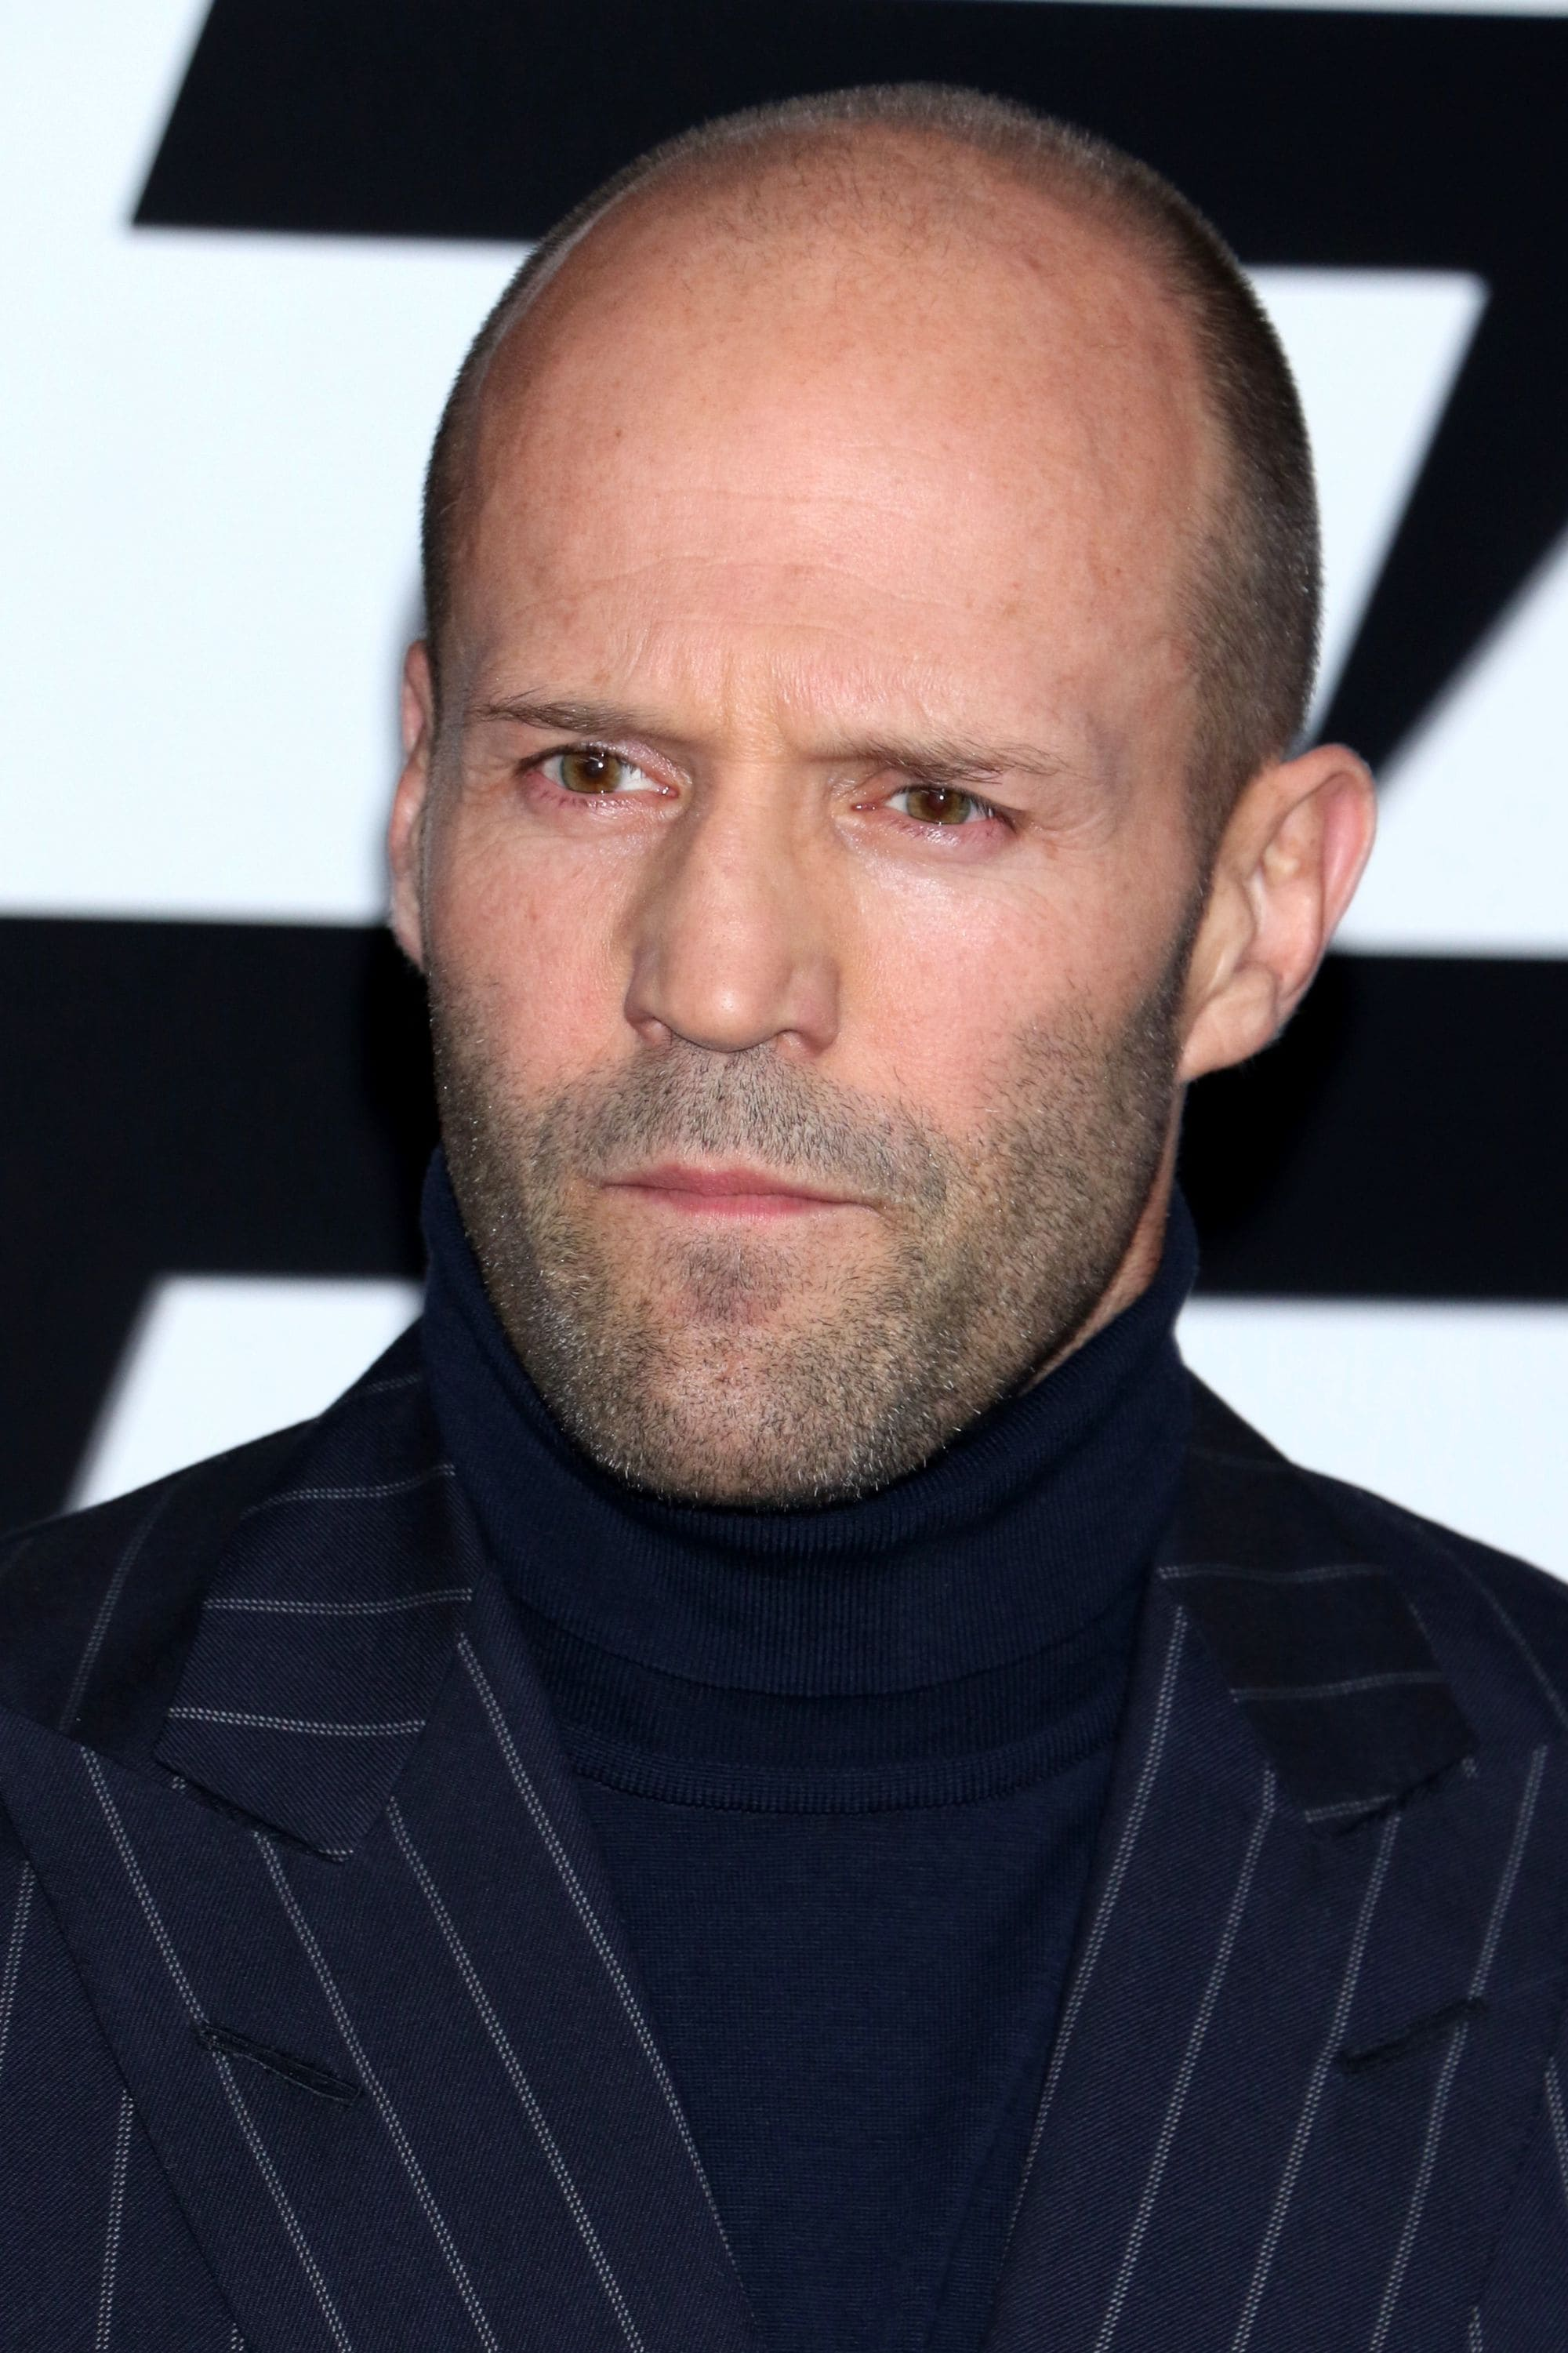 Hairstyles for receding hairline: Close-up headshot of Jason Statham with shaved head and stubble